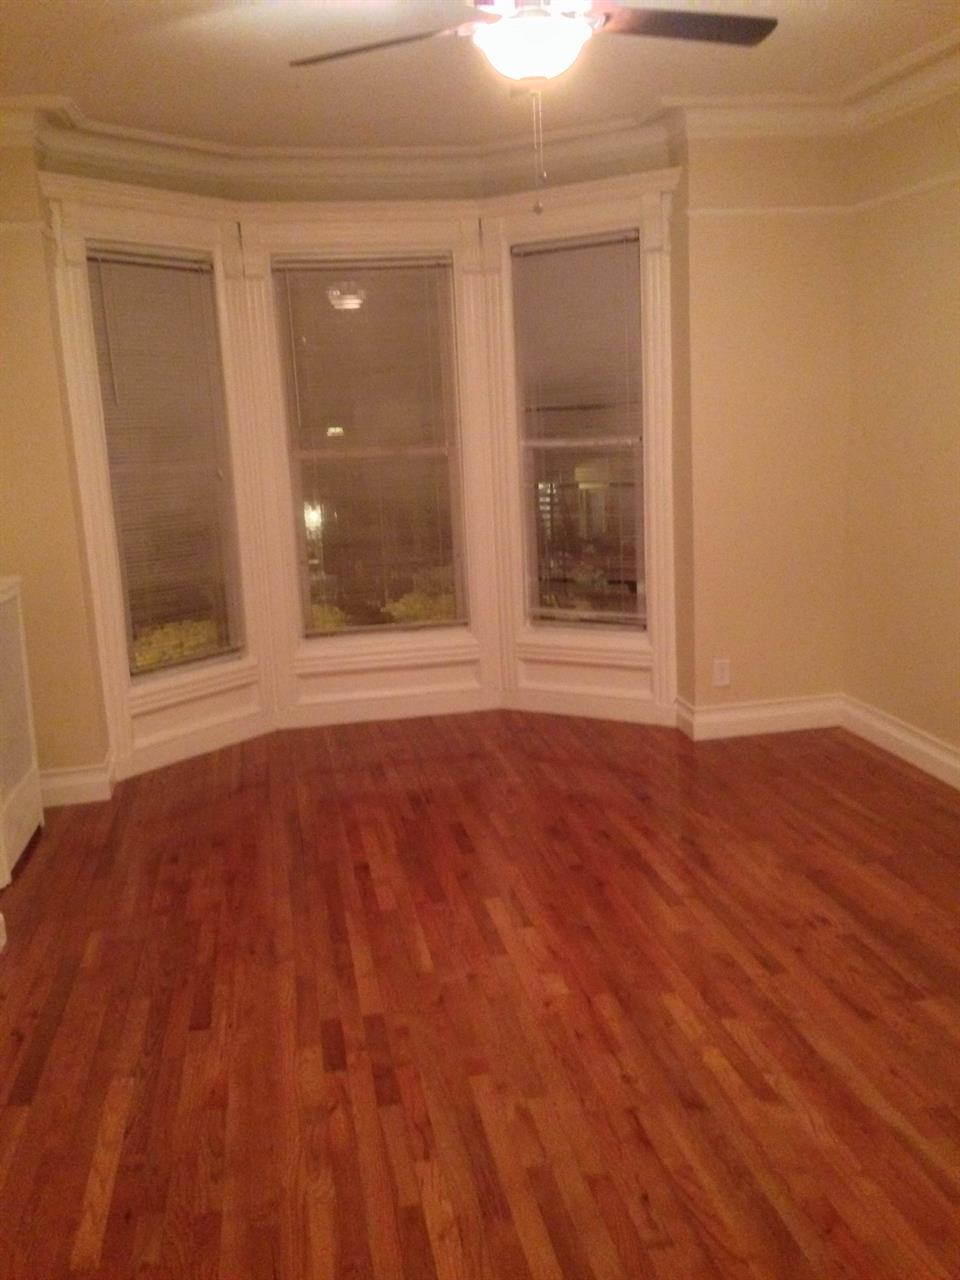 Apartment for Rent at 11th Ave & 40th St Brooklyn, New York 11218 United States